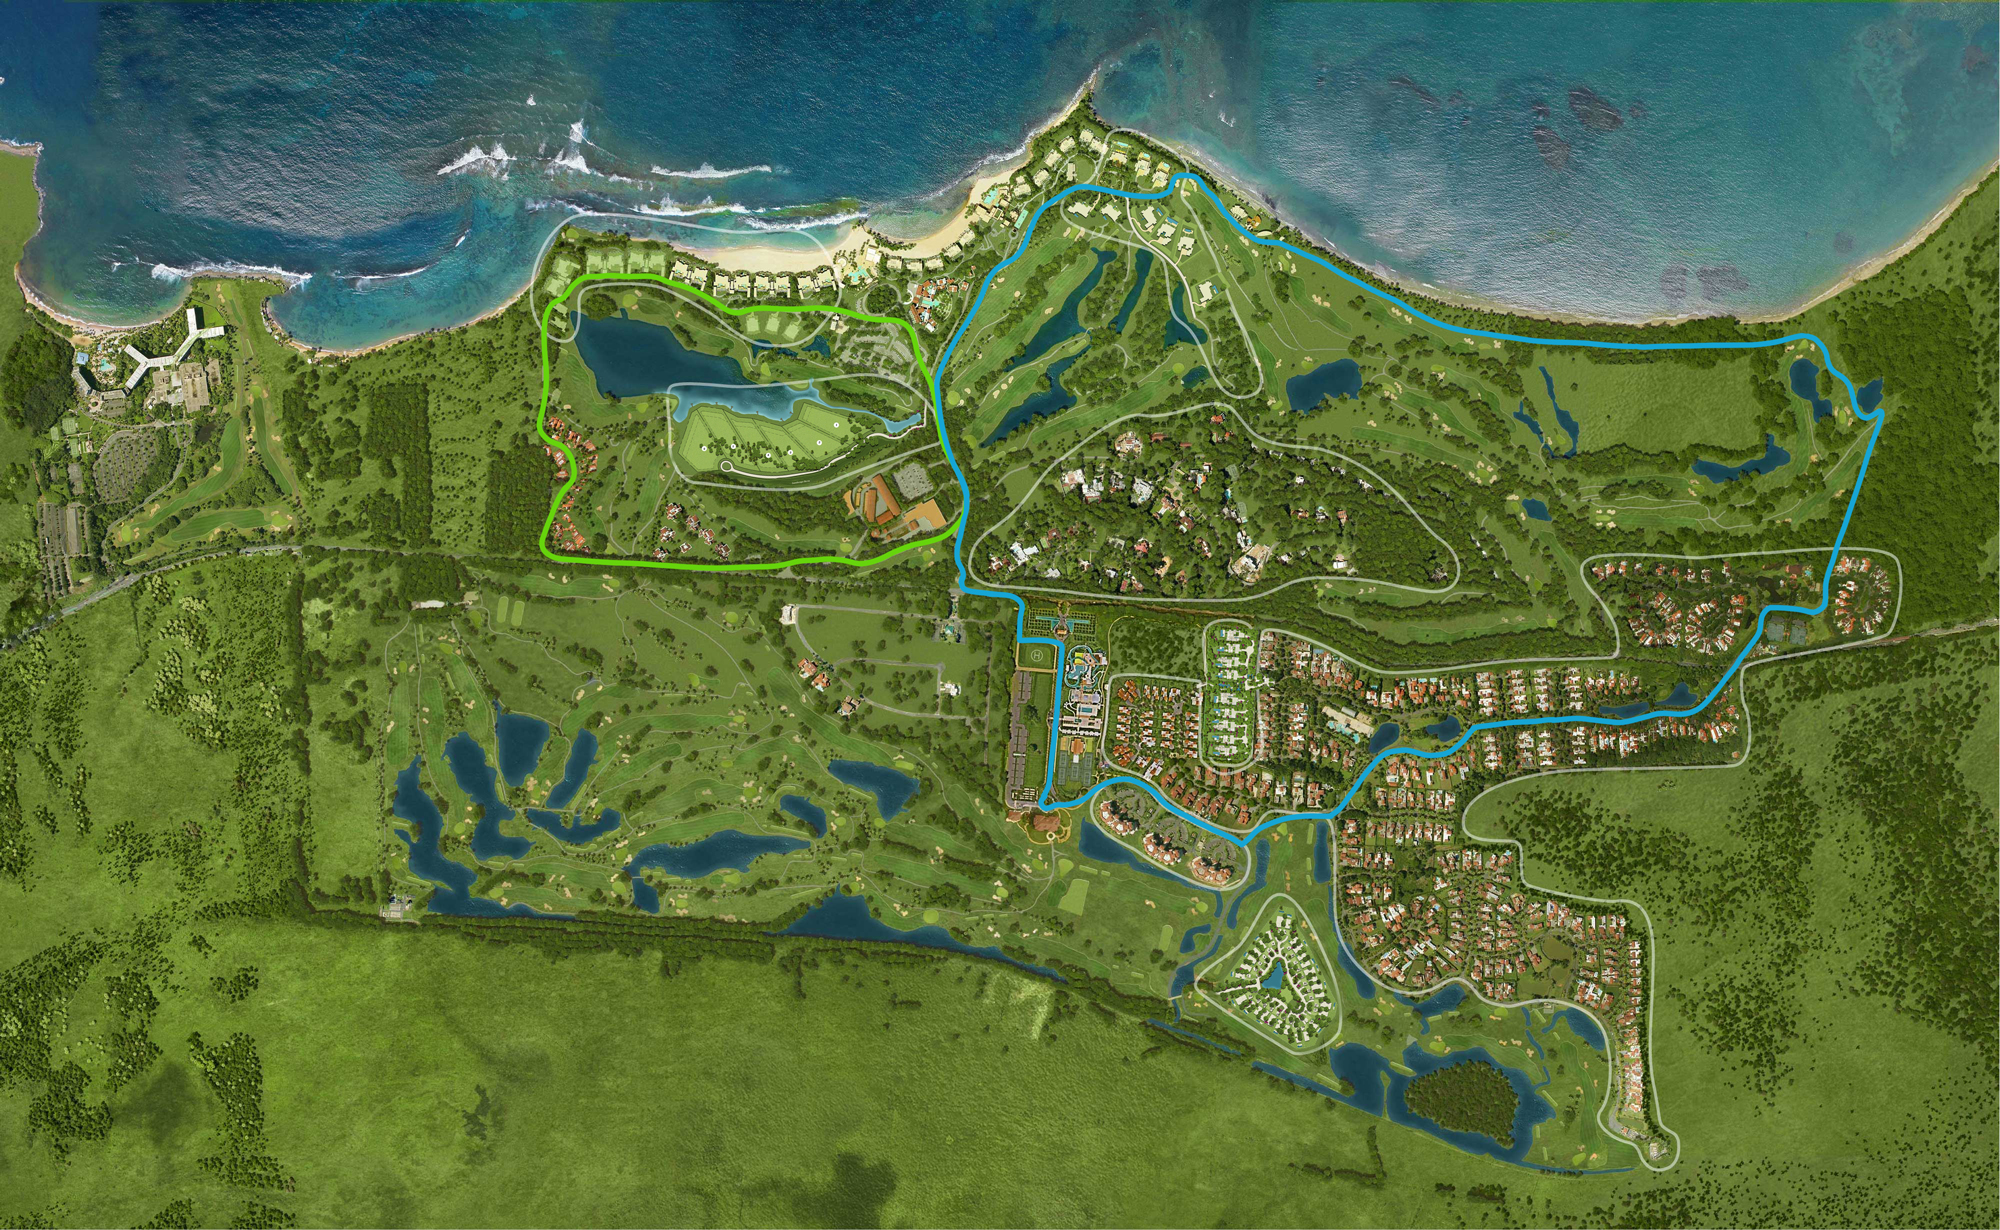 Resort Map - Dorado Beach Resort on